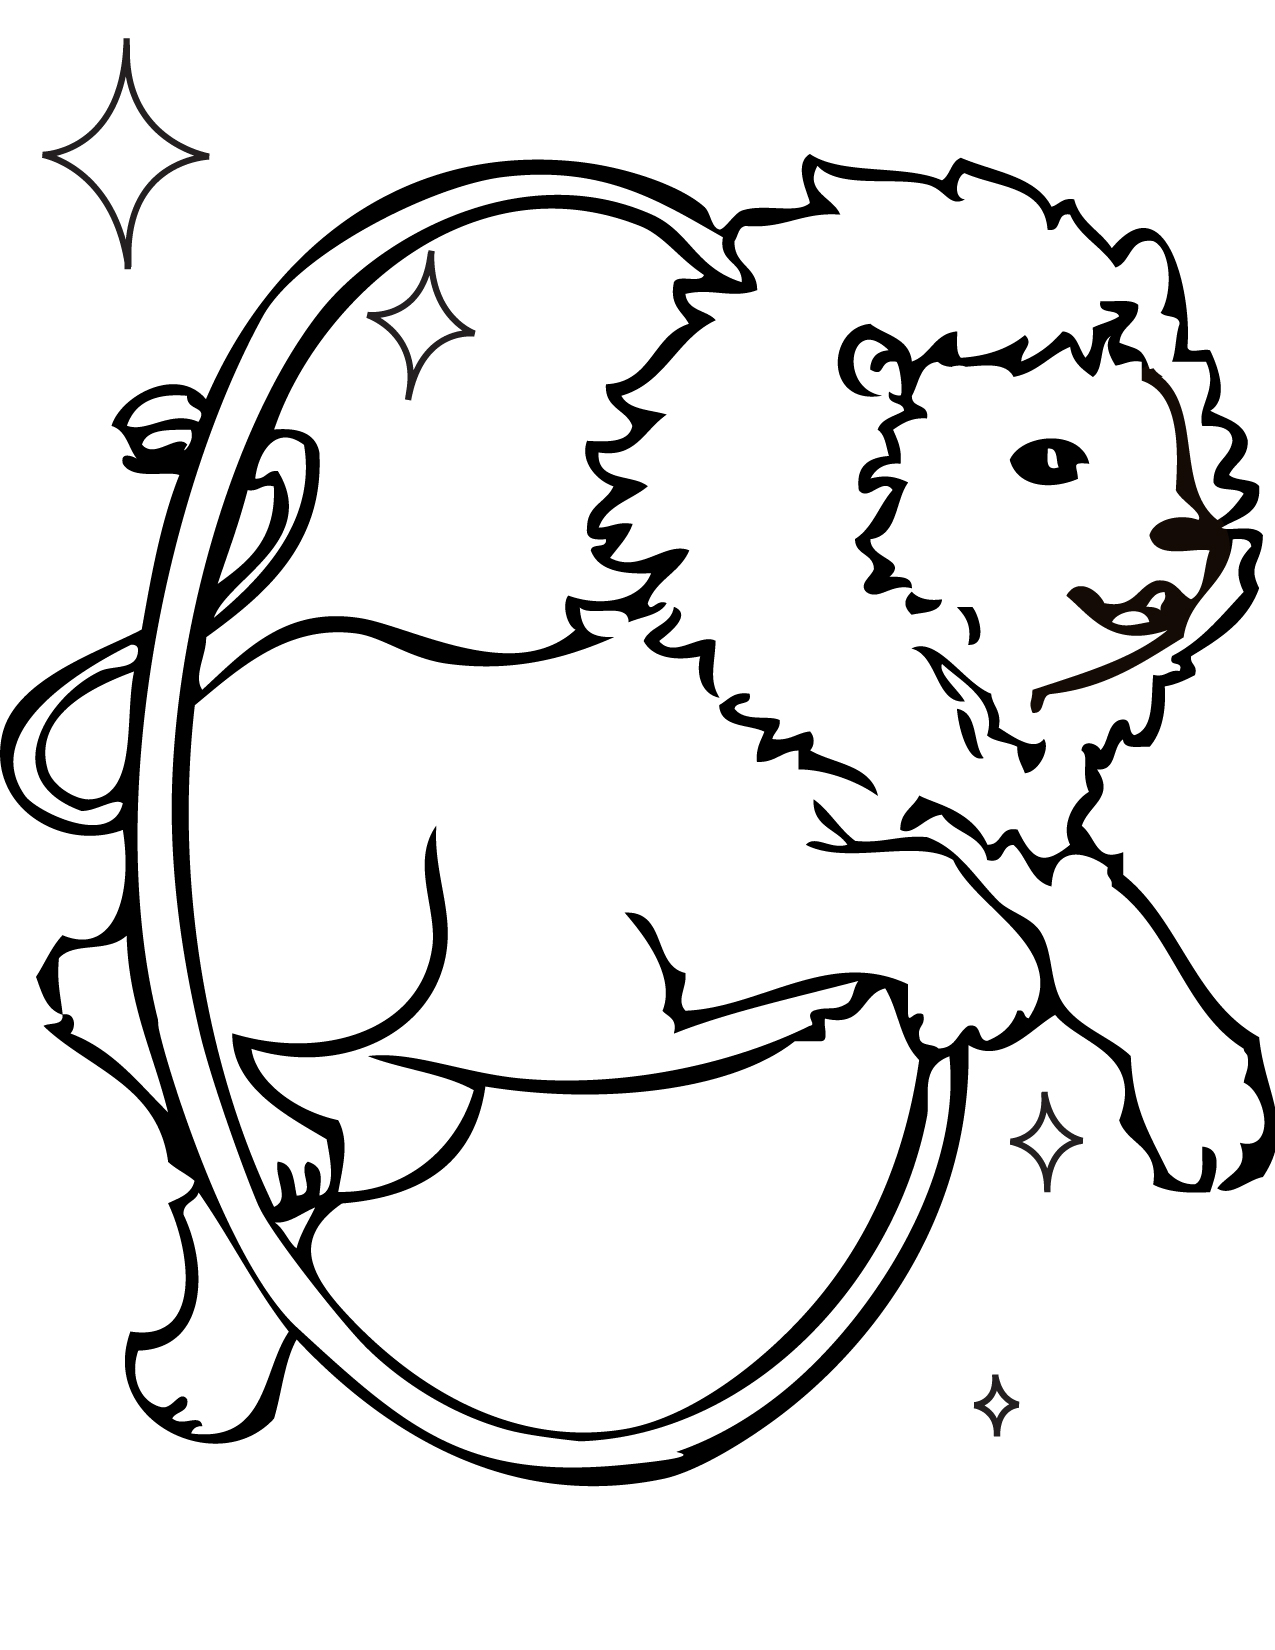 1275x1650 Print The Vintage Circus Coloring Pages Item 22071, Vintage Circus